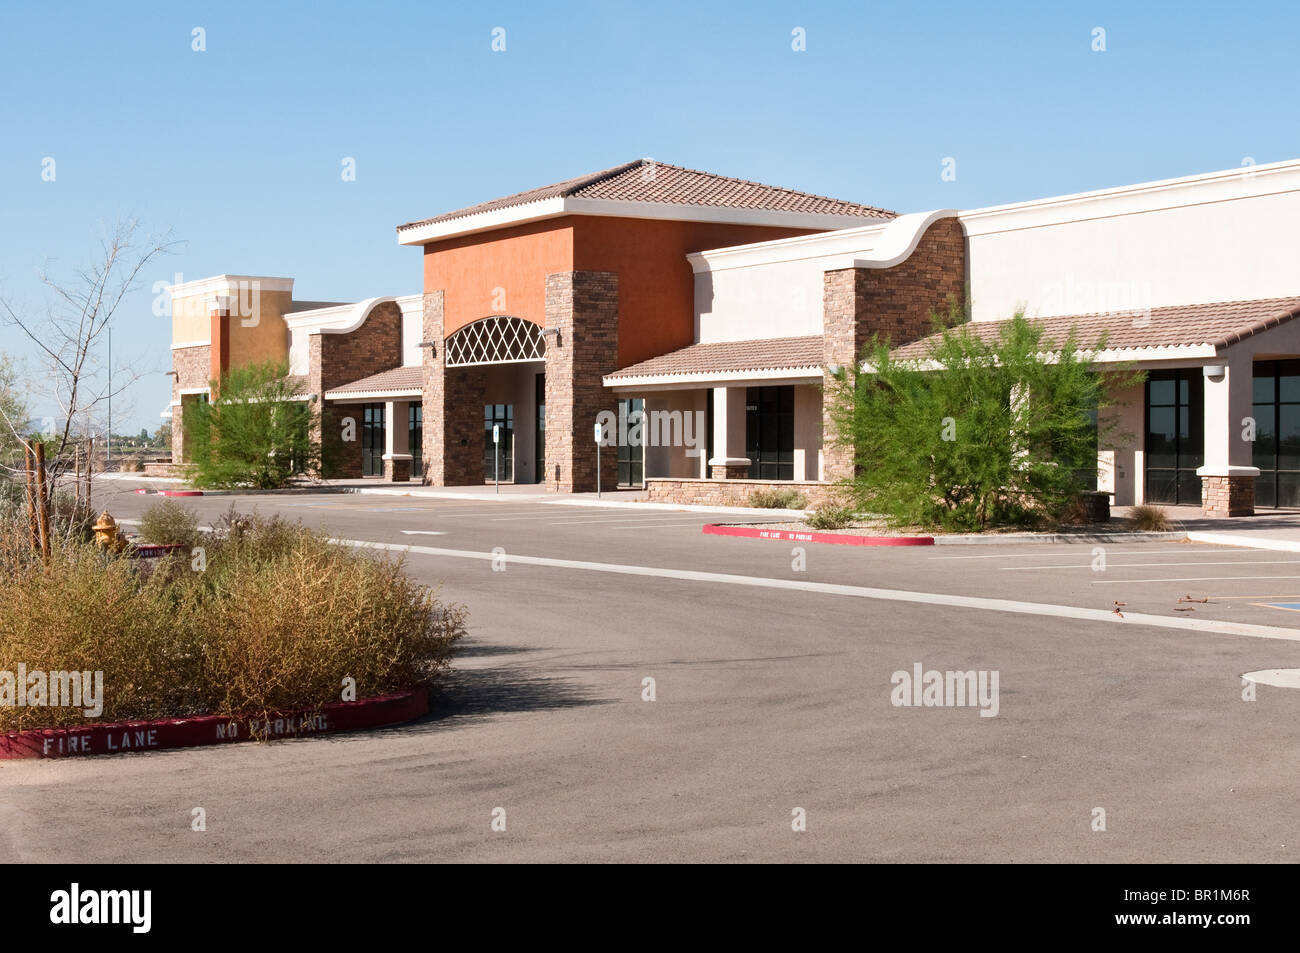 Retail spaces stand empty in an abandoned development project. - Stock Image